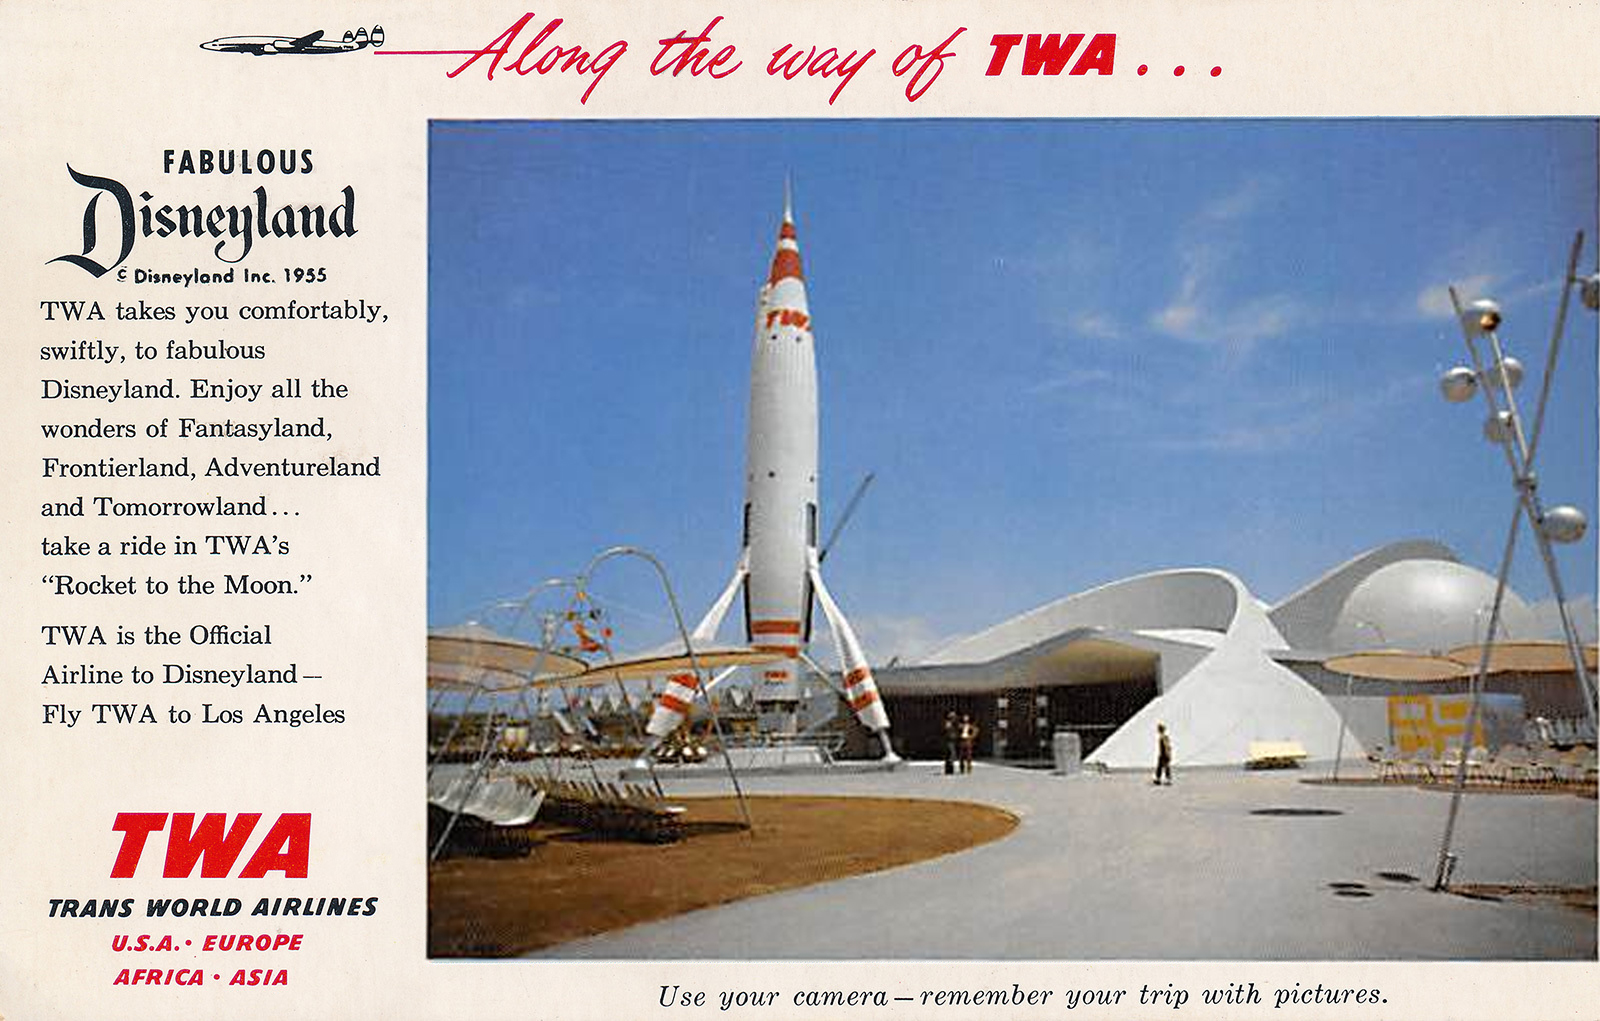 TWA Moonliner at Rocket to the Moon | WaltsApartment.com